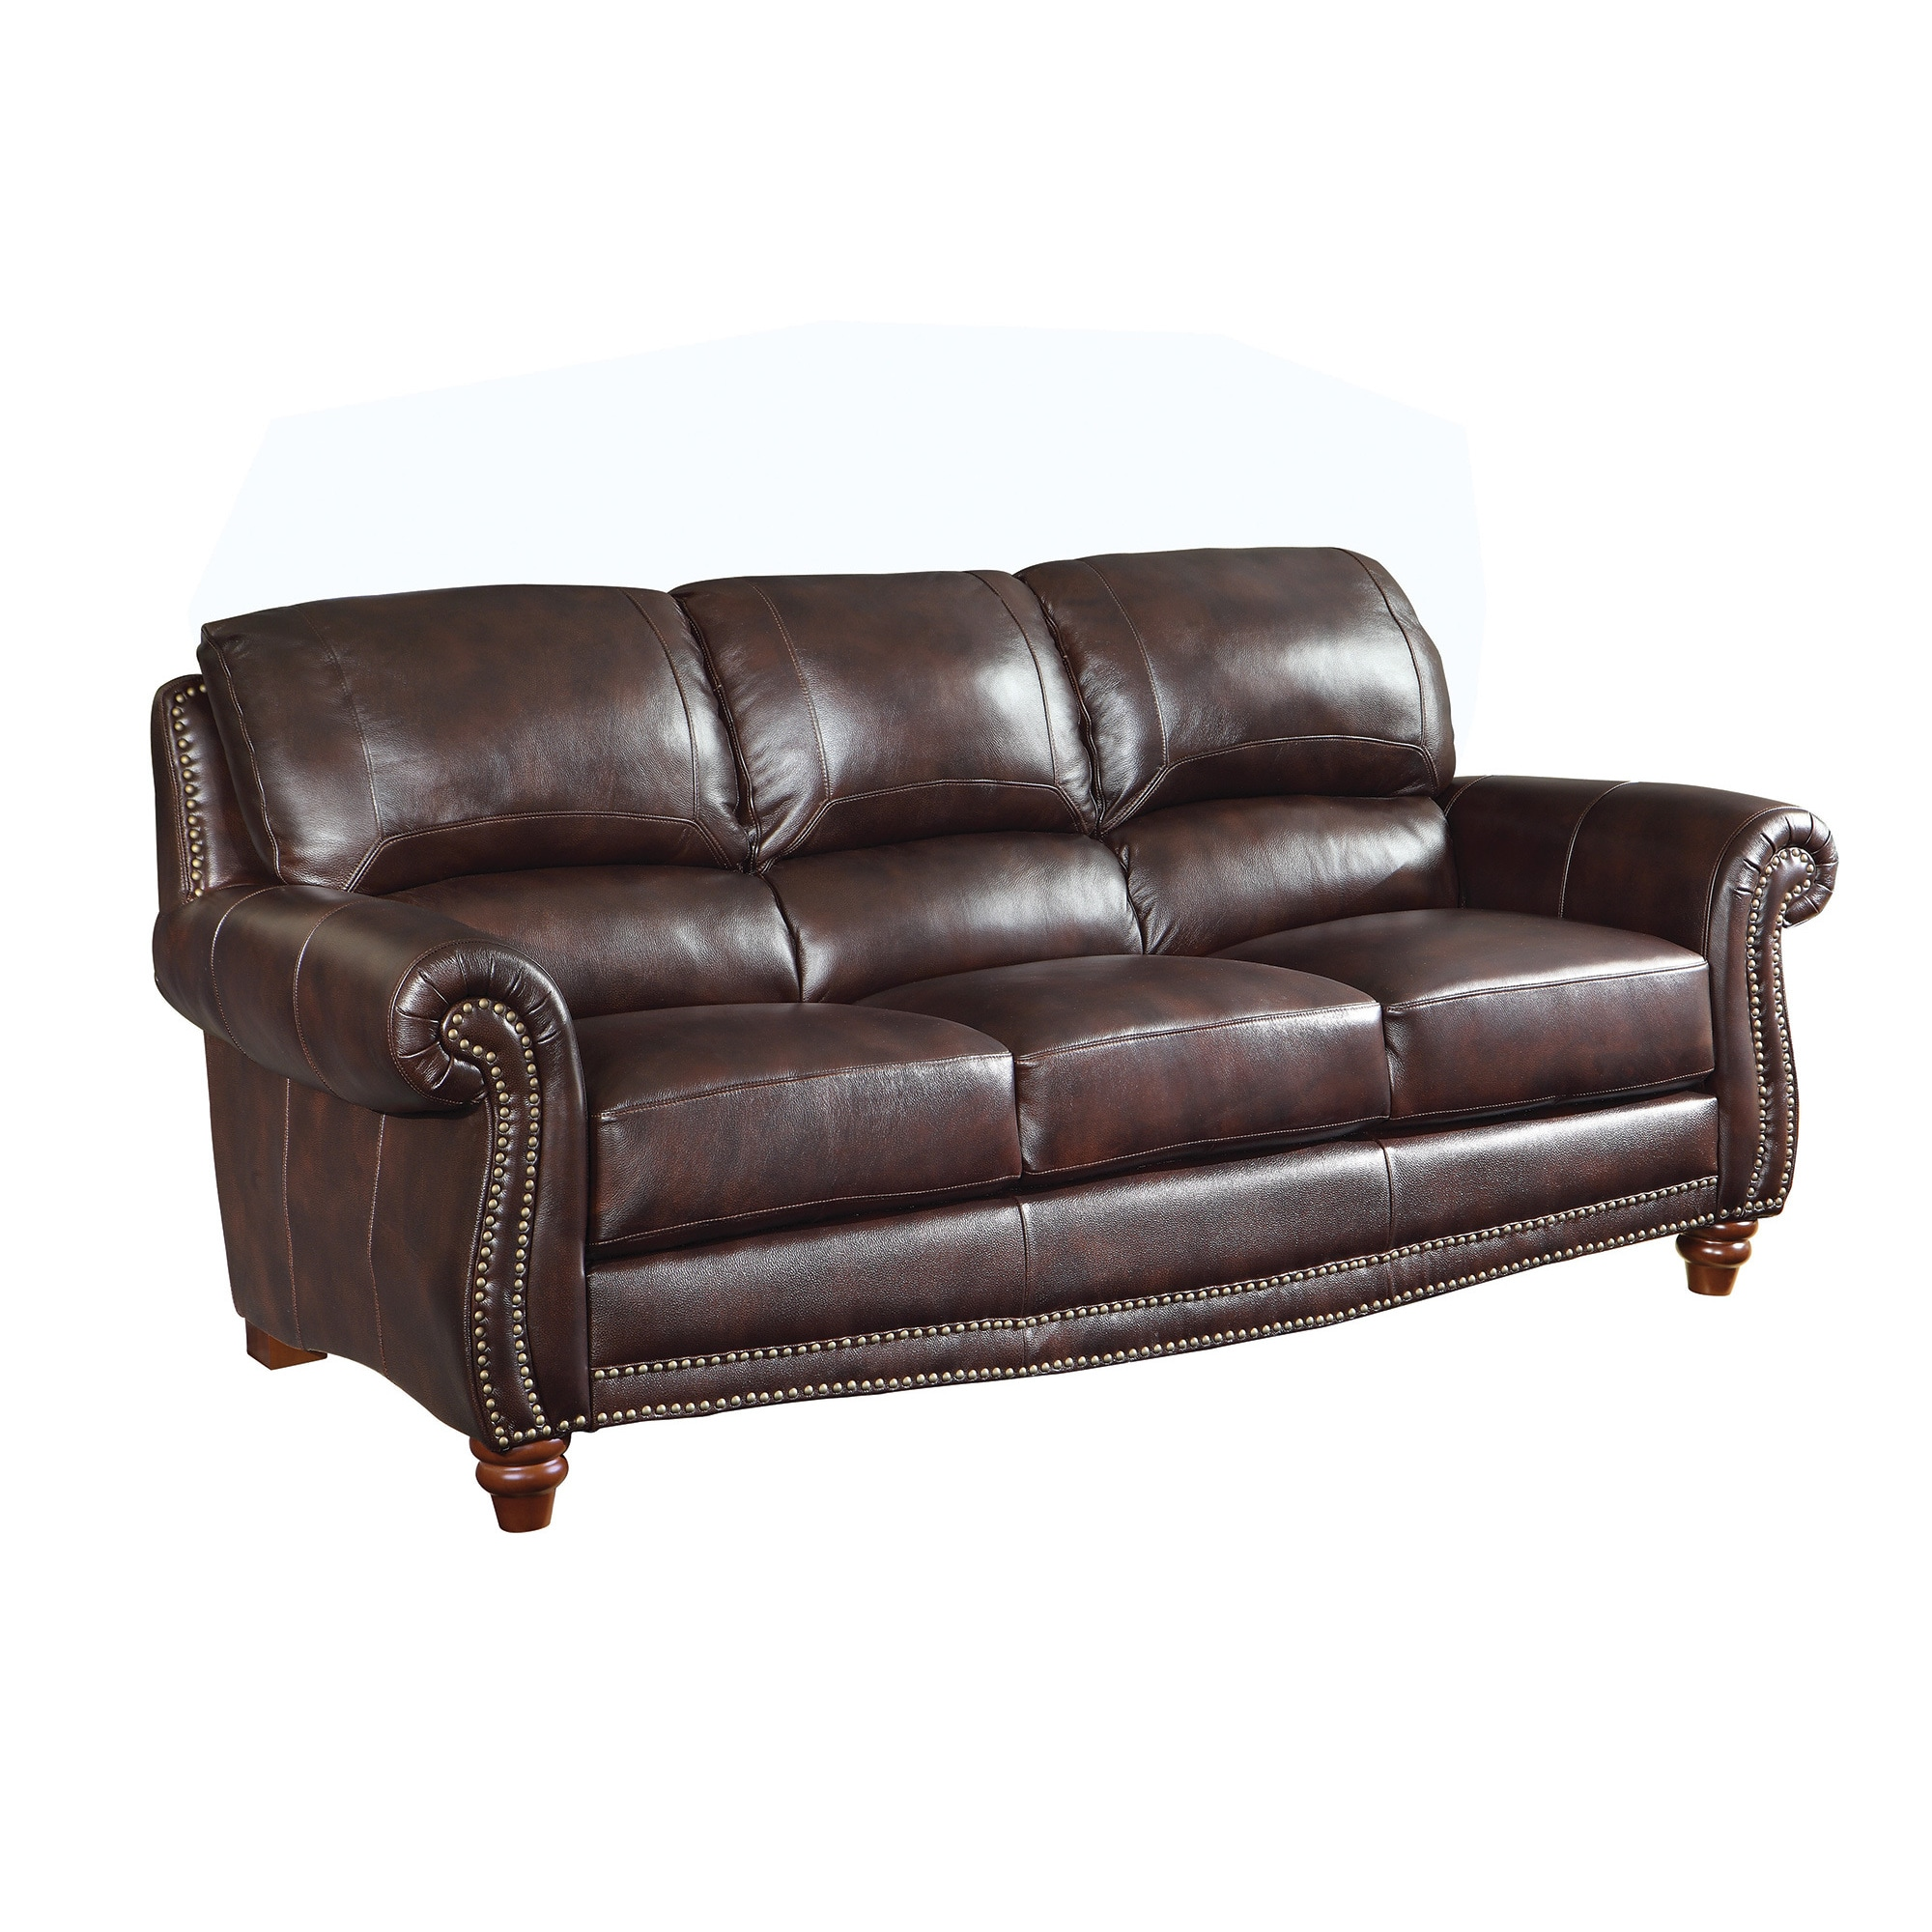 burgundy leather sofa and loveseat stripped coaster company free shipping today overstock com 19038711